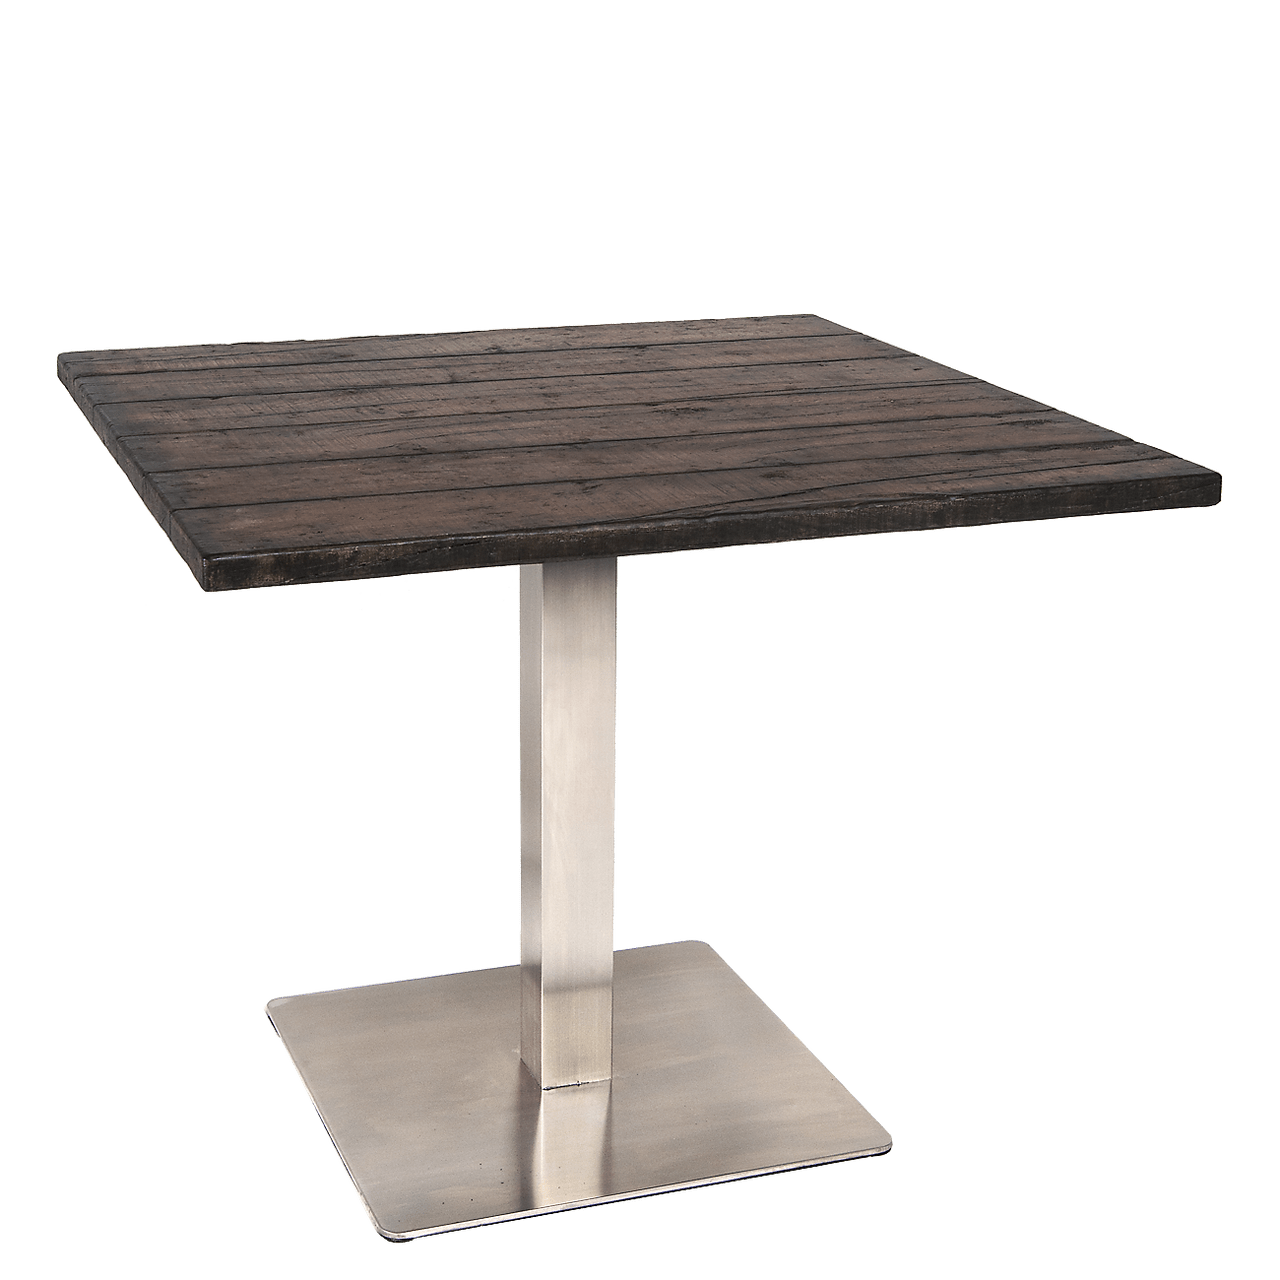 Faux Wood Outdoor Dining Table Concrete Top